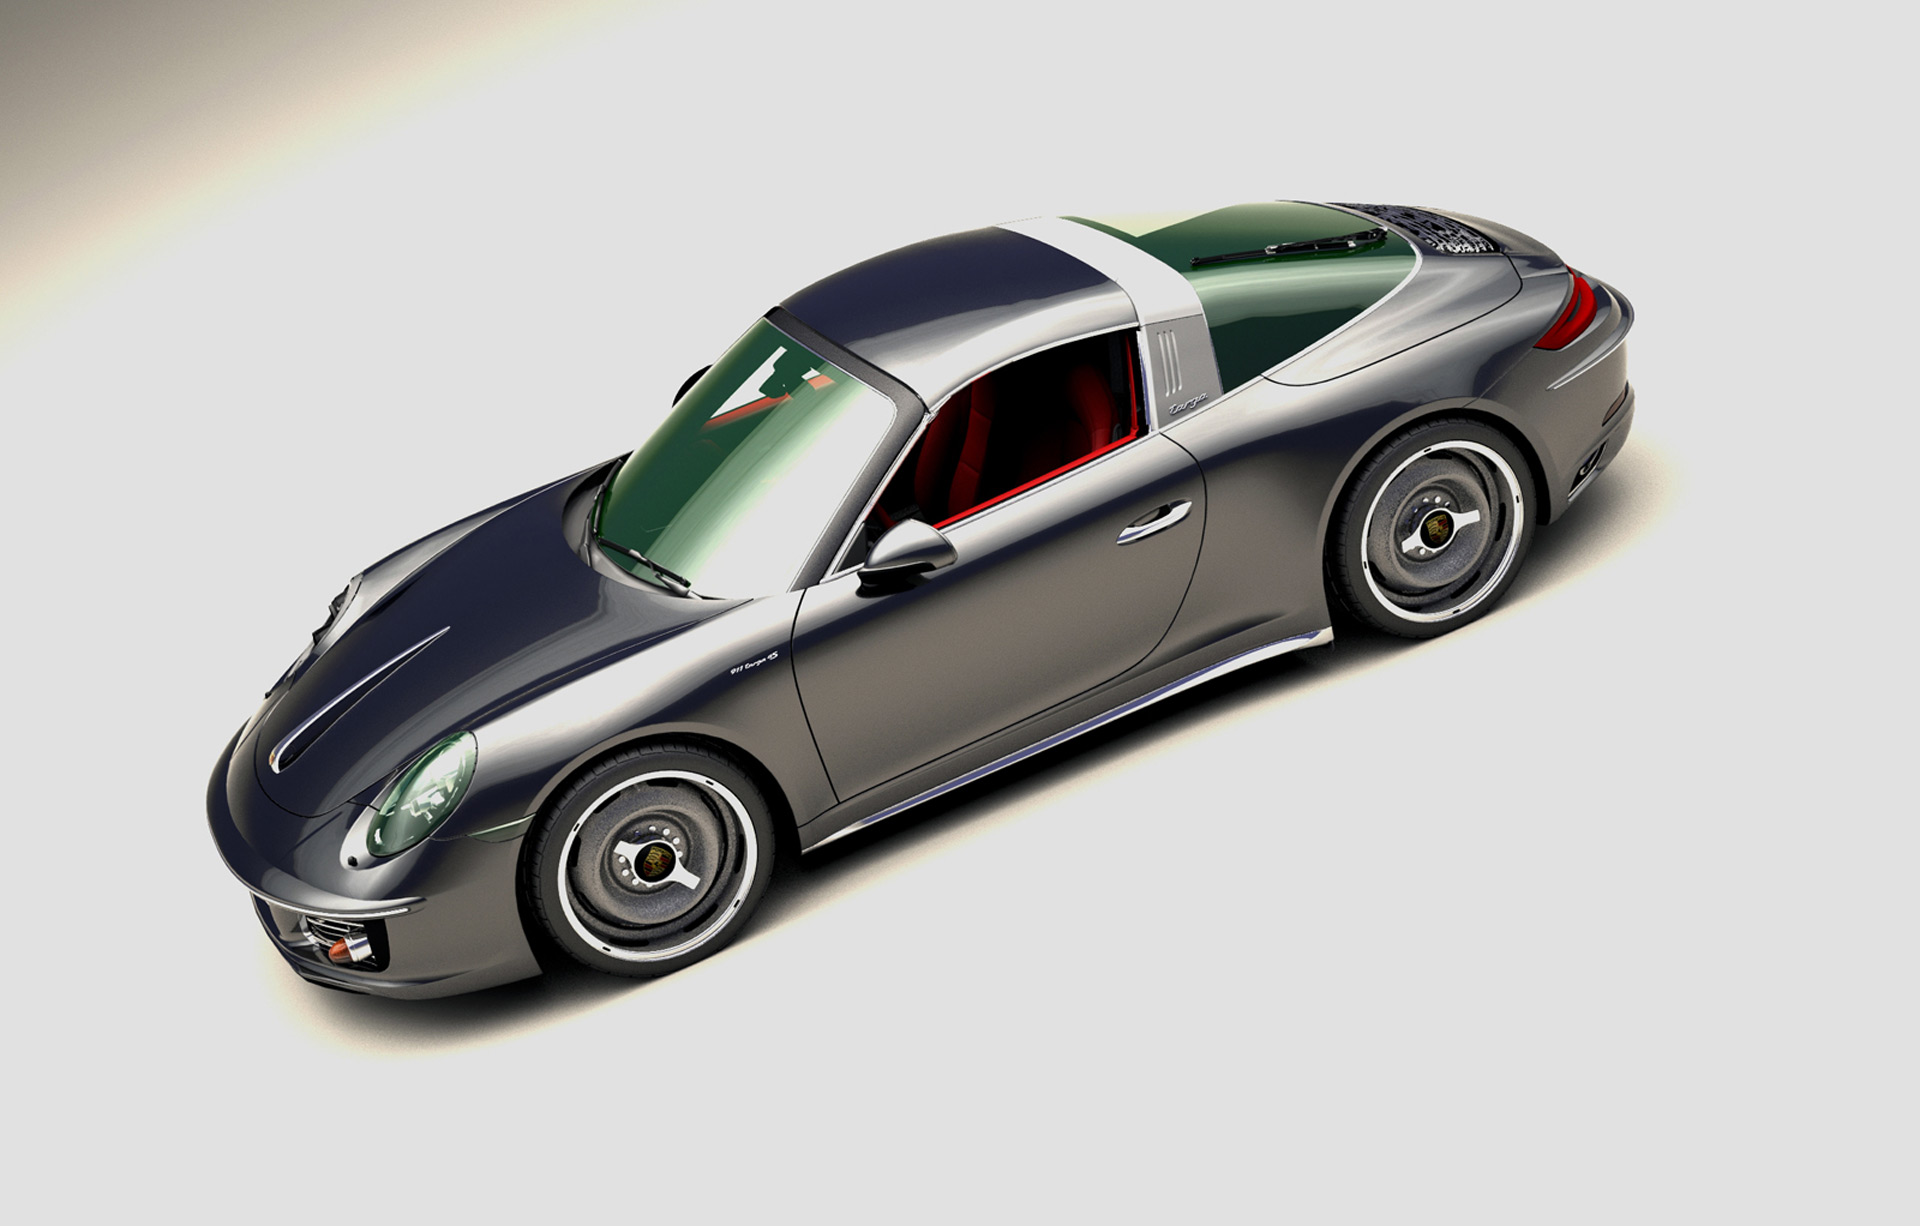 Zolland Design Comes Out With Tasty Retro Kit For The 911